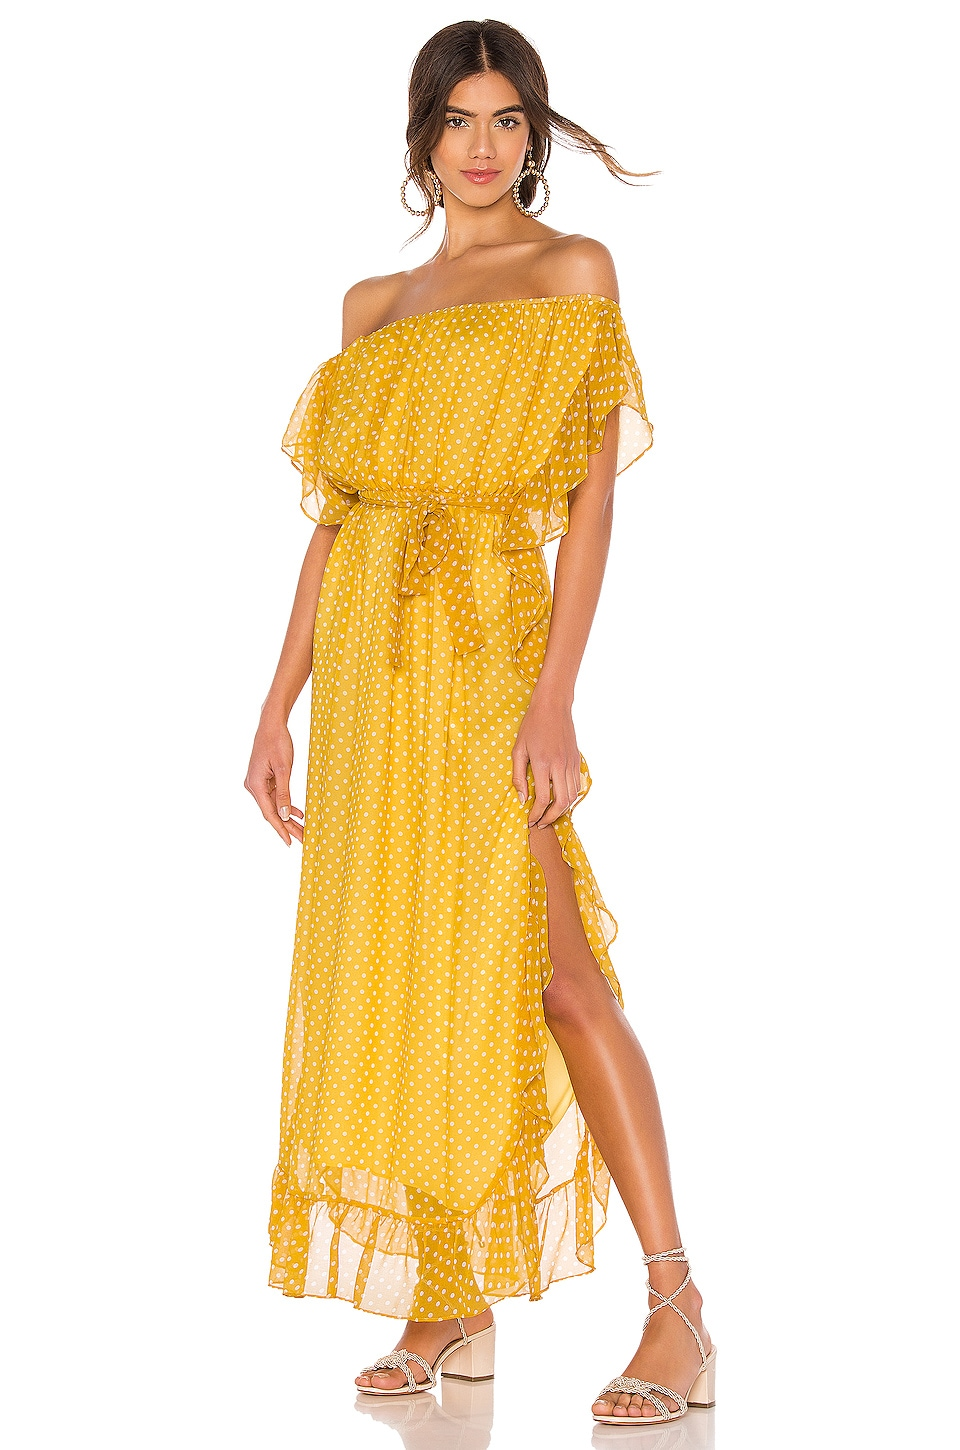 Tularosa Blaire Dress in Yellow